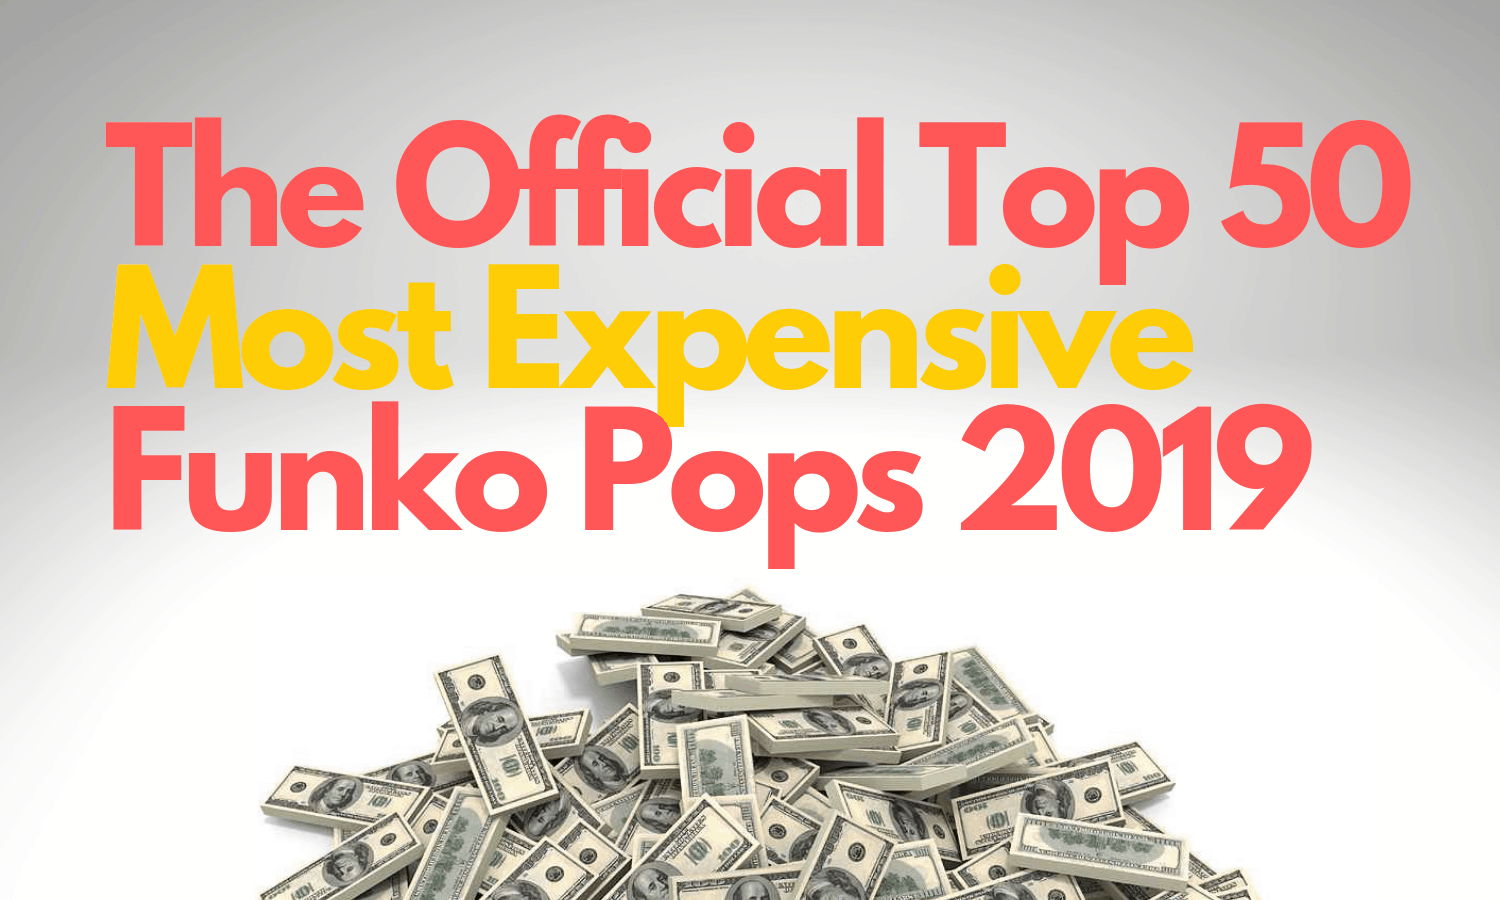 Most Expensive Funko Pop